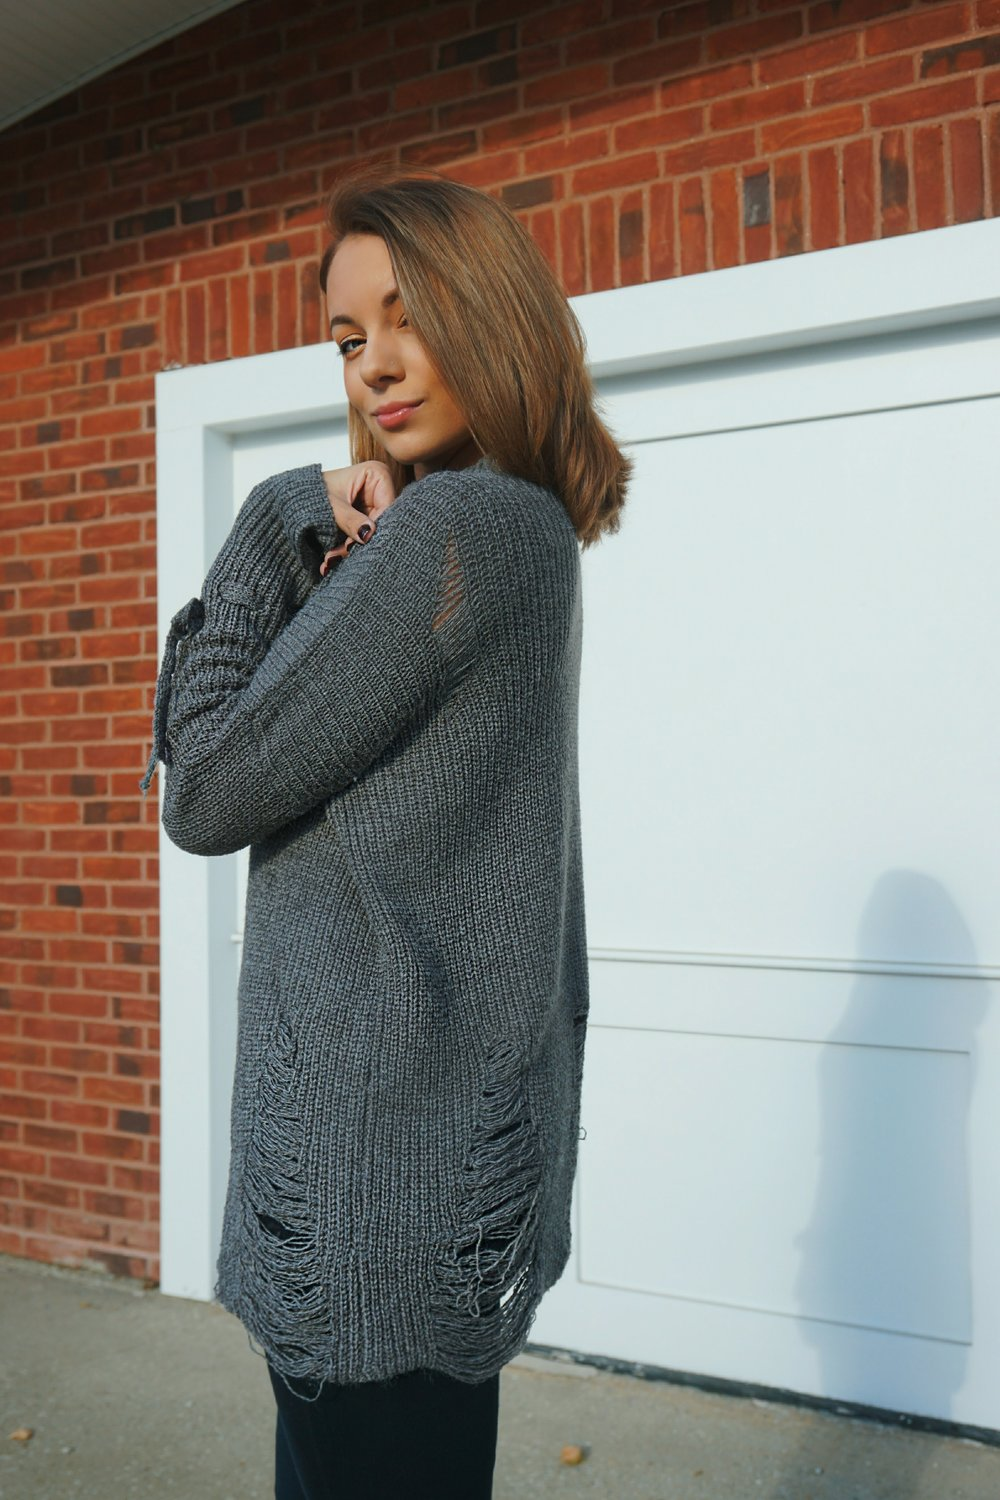 A fashion blogger wearing a gray distressed sweater.